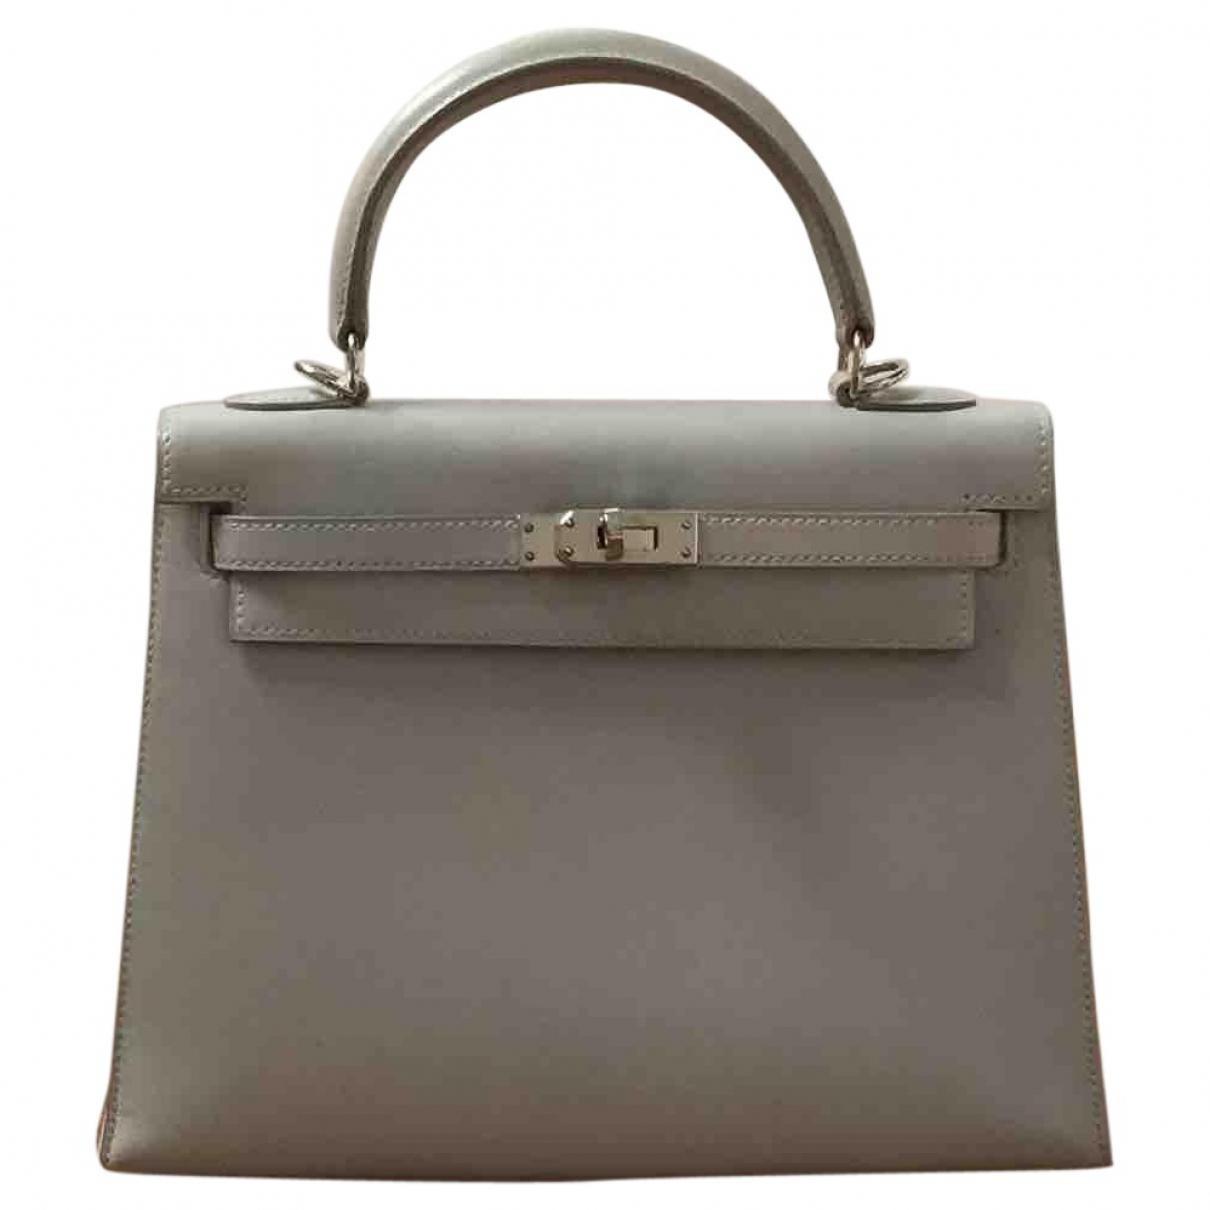 1e087eecd484 Lyst - Hermès Pre-owned Kelly 25 Leather Handbag in Gray